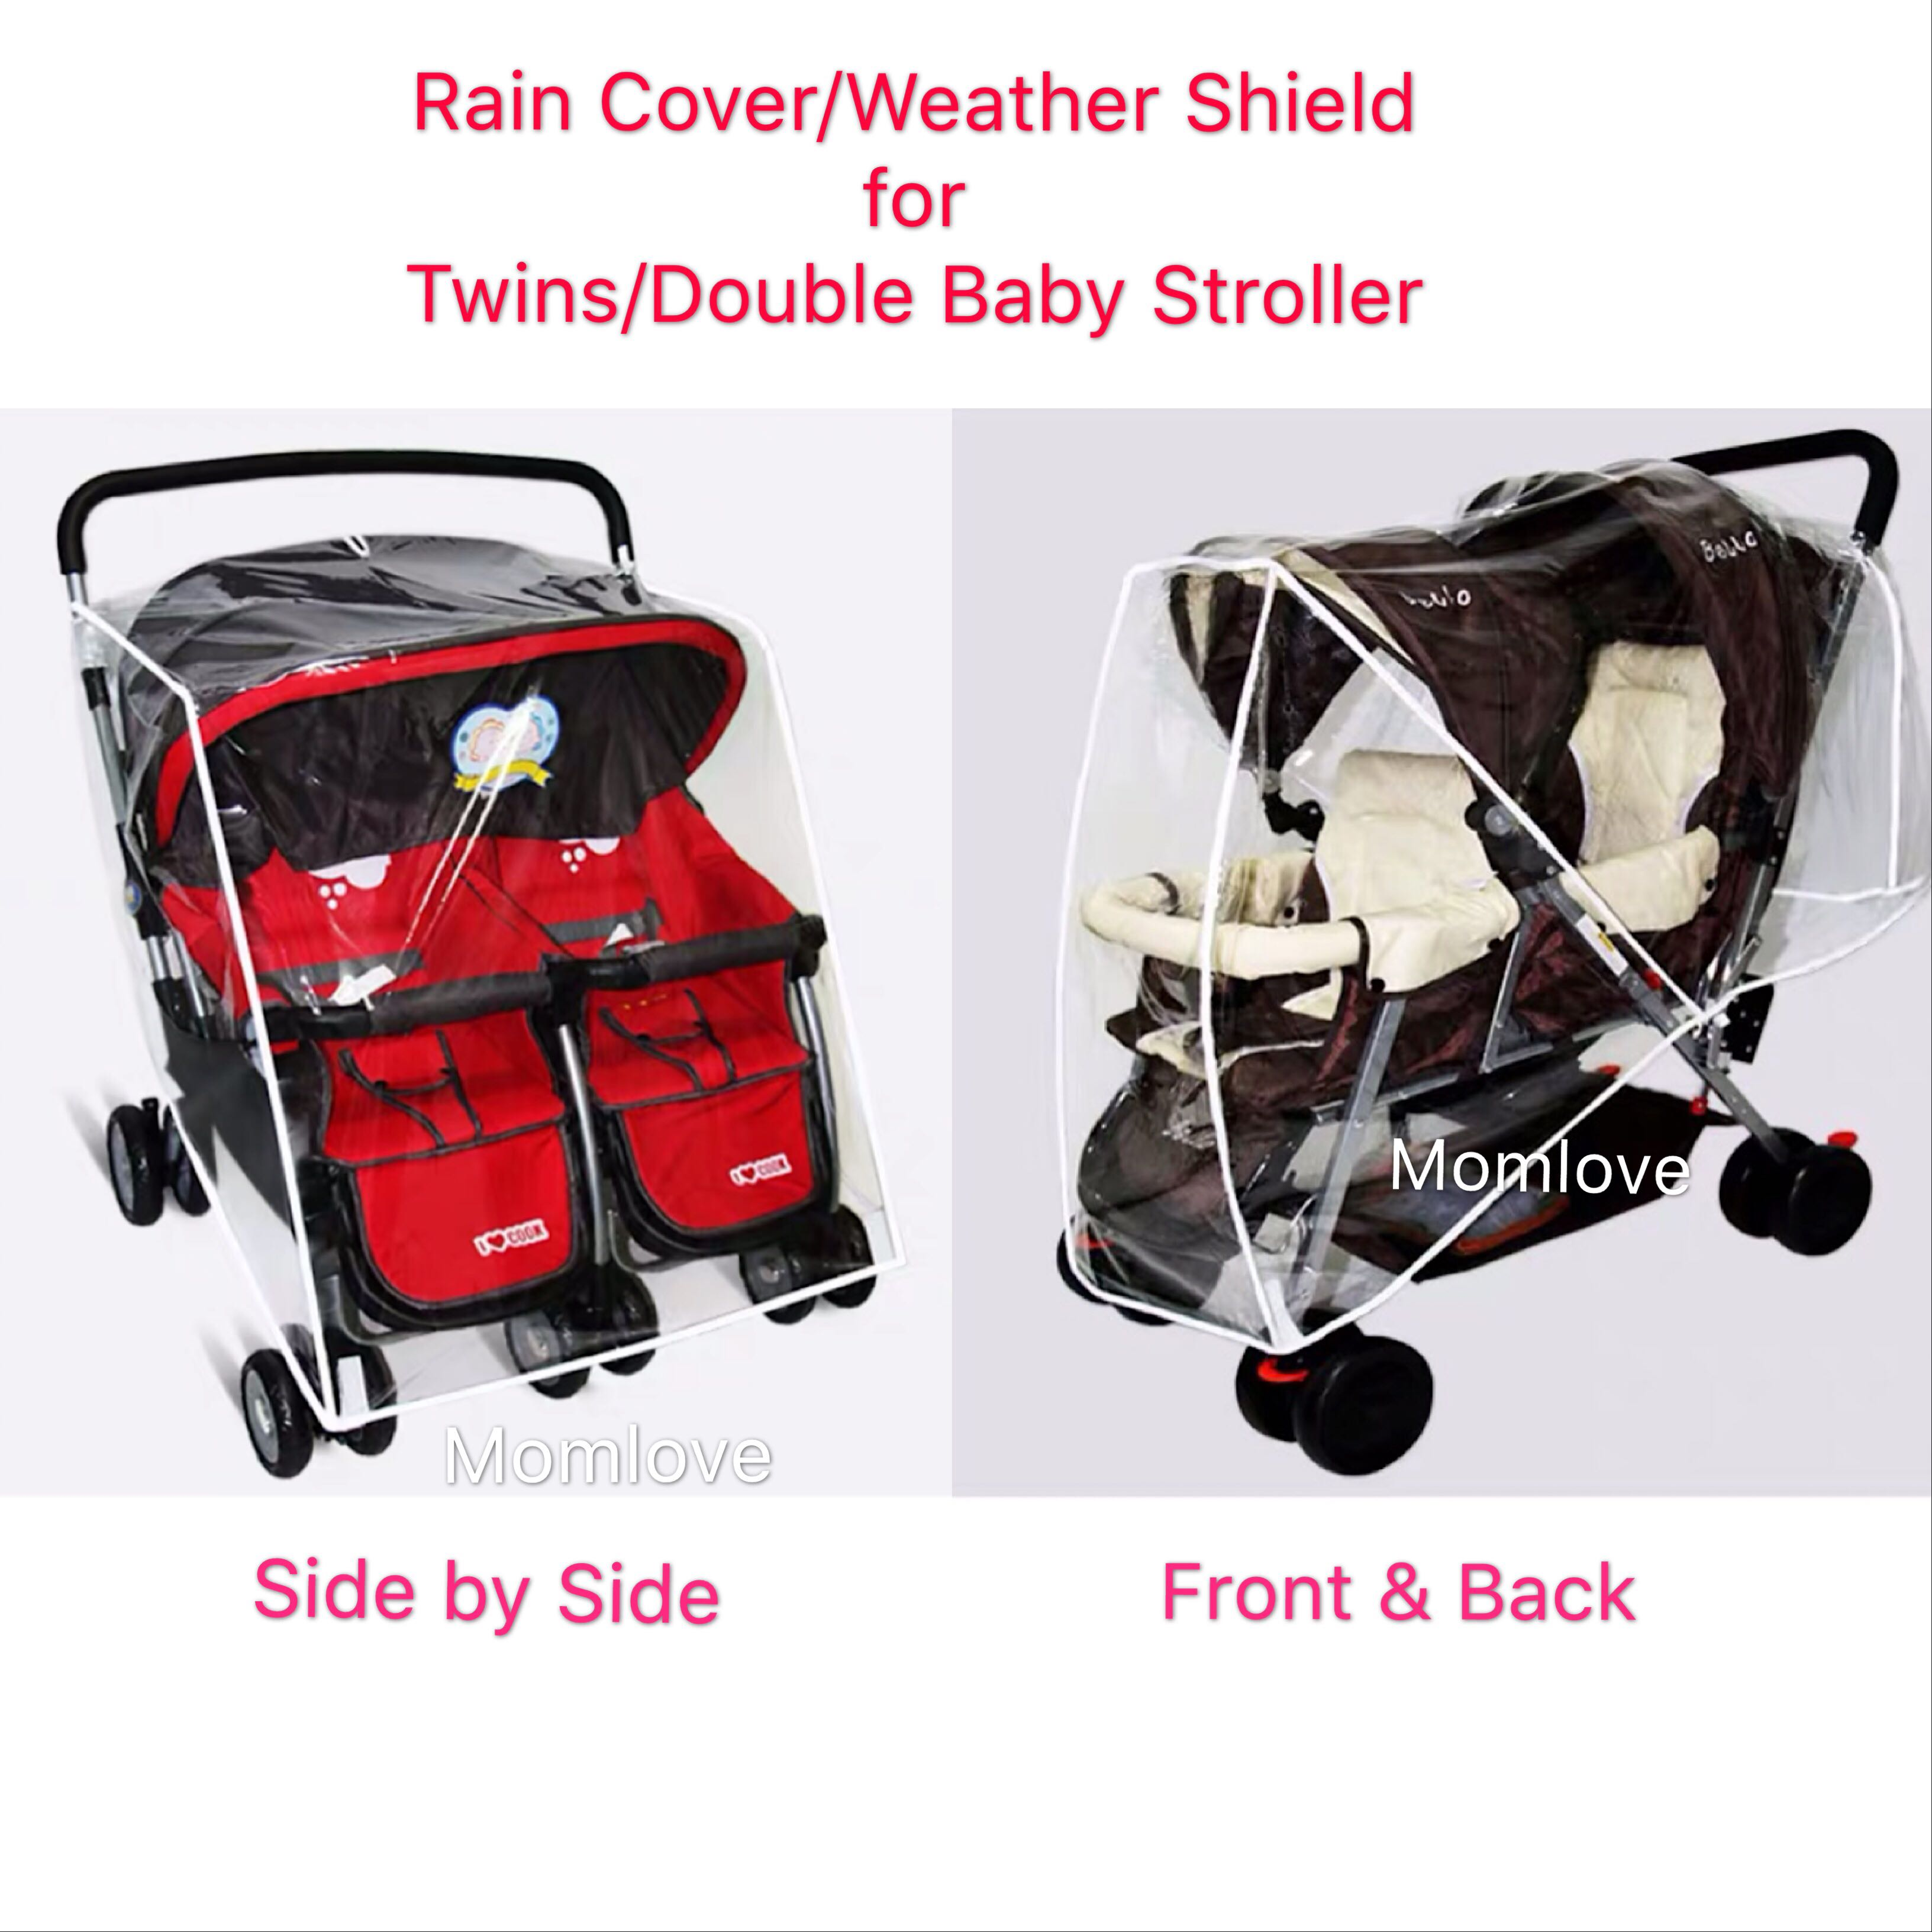 Double Stroller Rain Cover Ready Stock Brand New Rain Cover Weather Shield Canopy For Twins Or Double Baby Stroller Pram Tricycle Must Buy